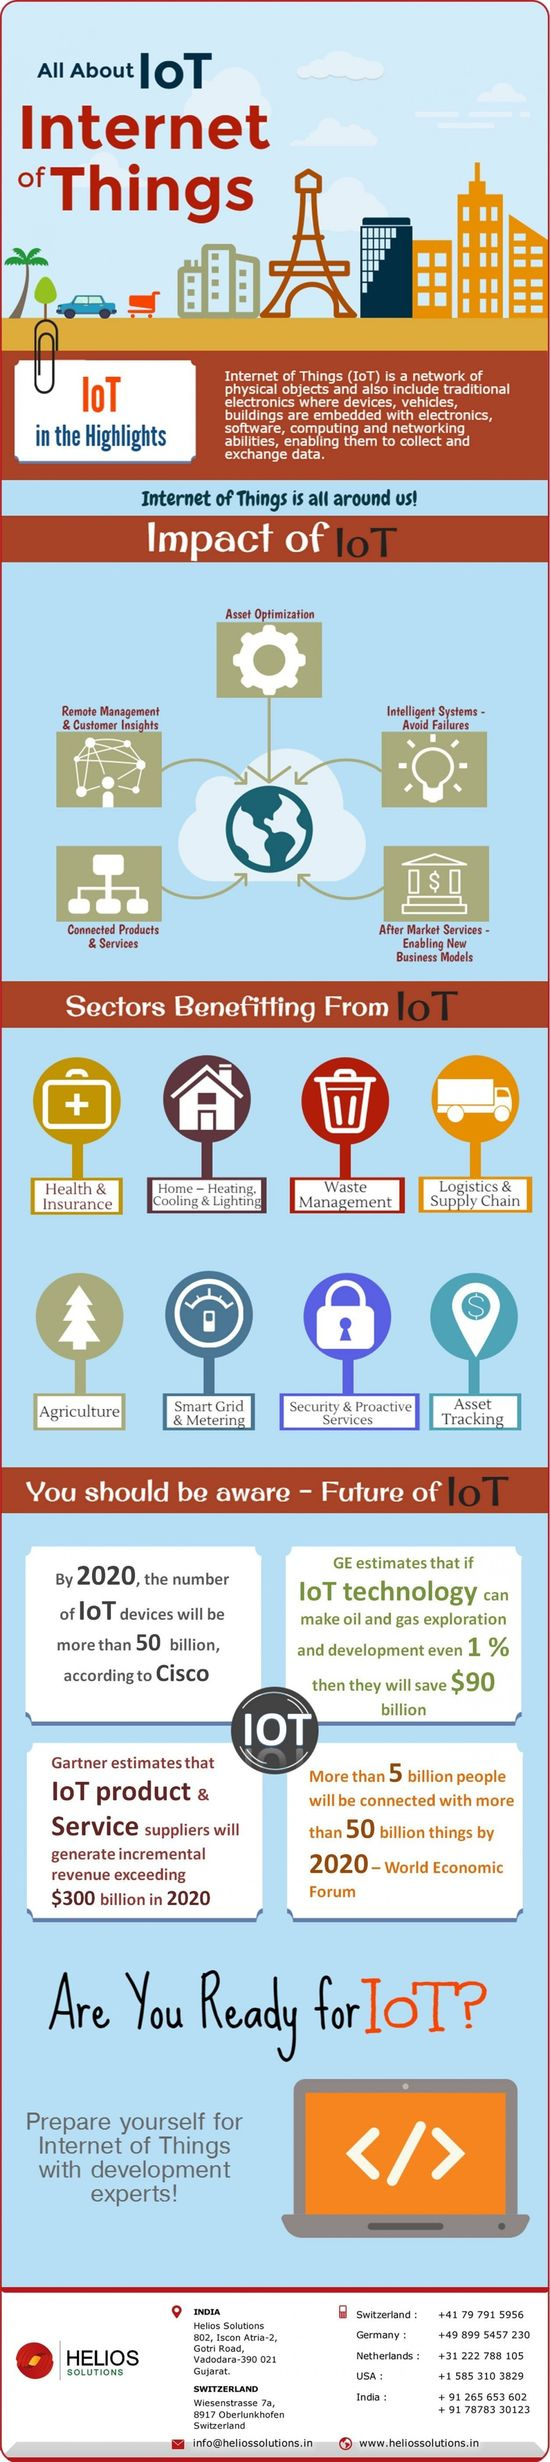 All About IoT – Inte